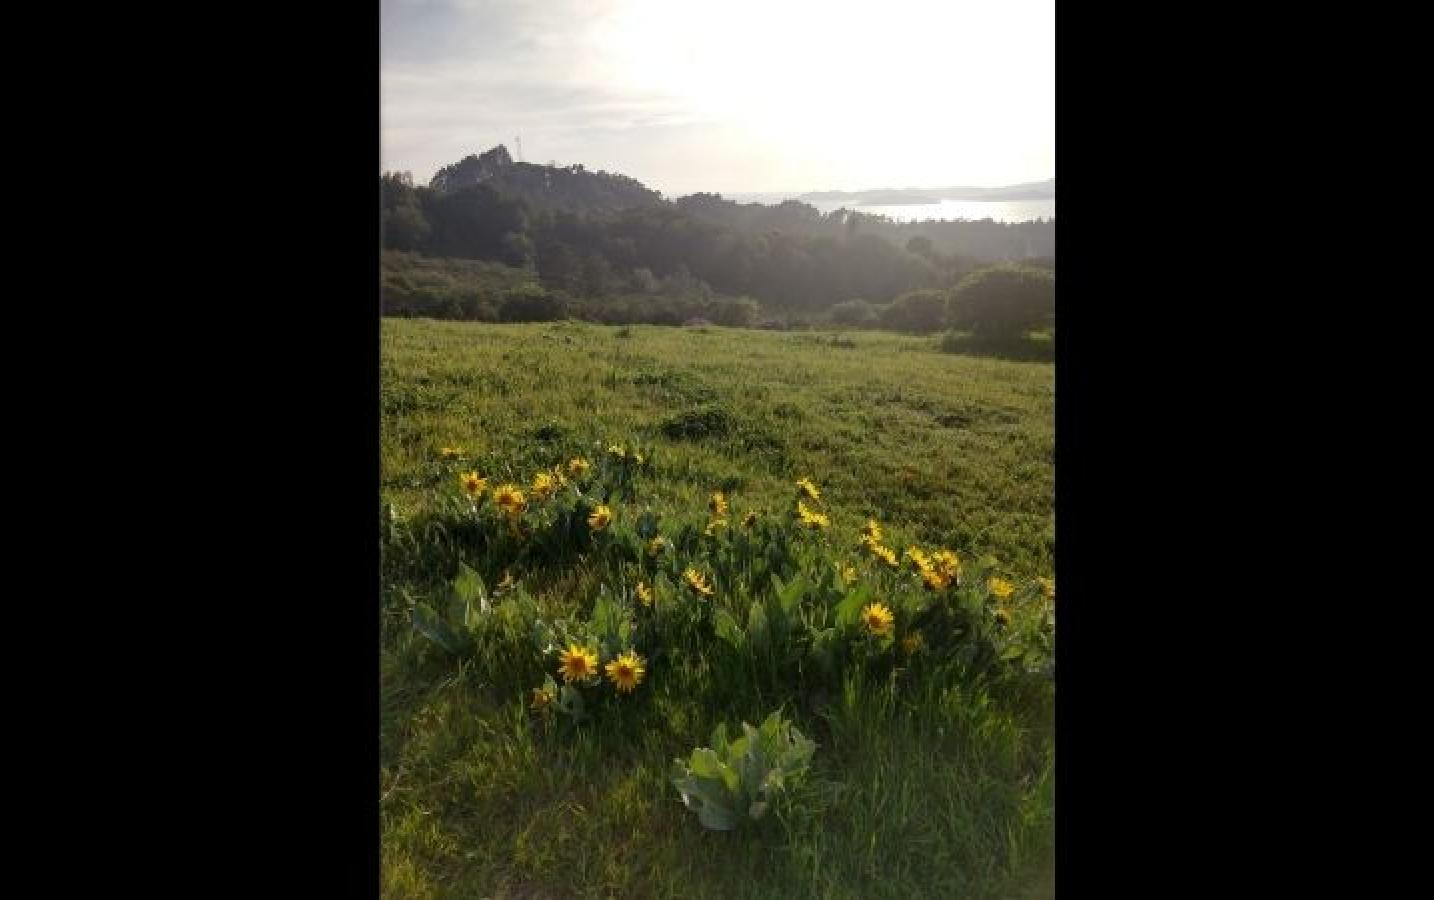 Meghan: Wildflowers at Tilden Park in Berkeley.